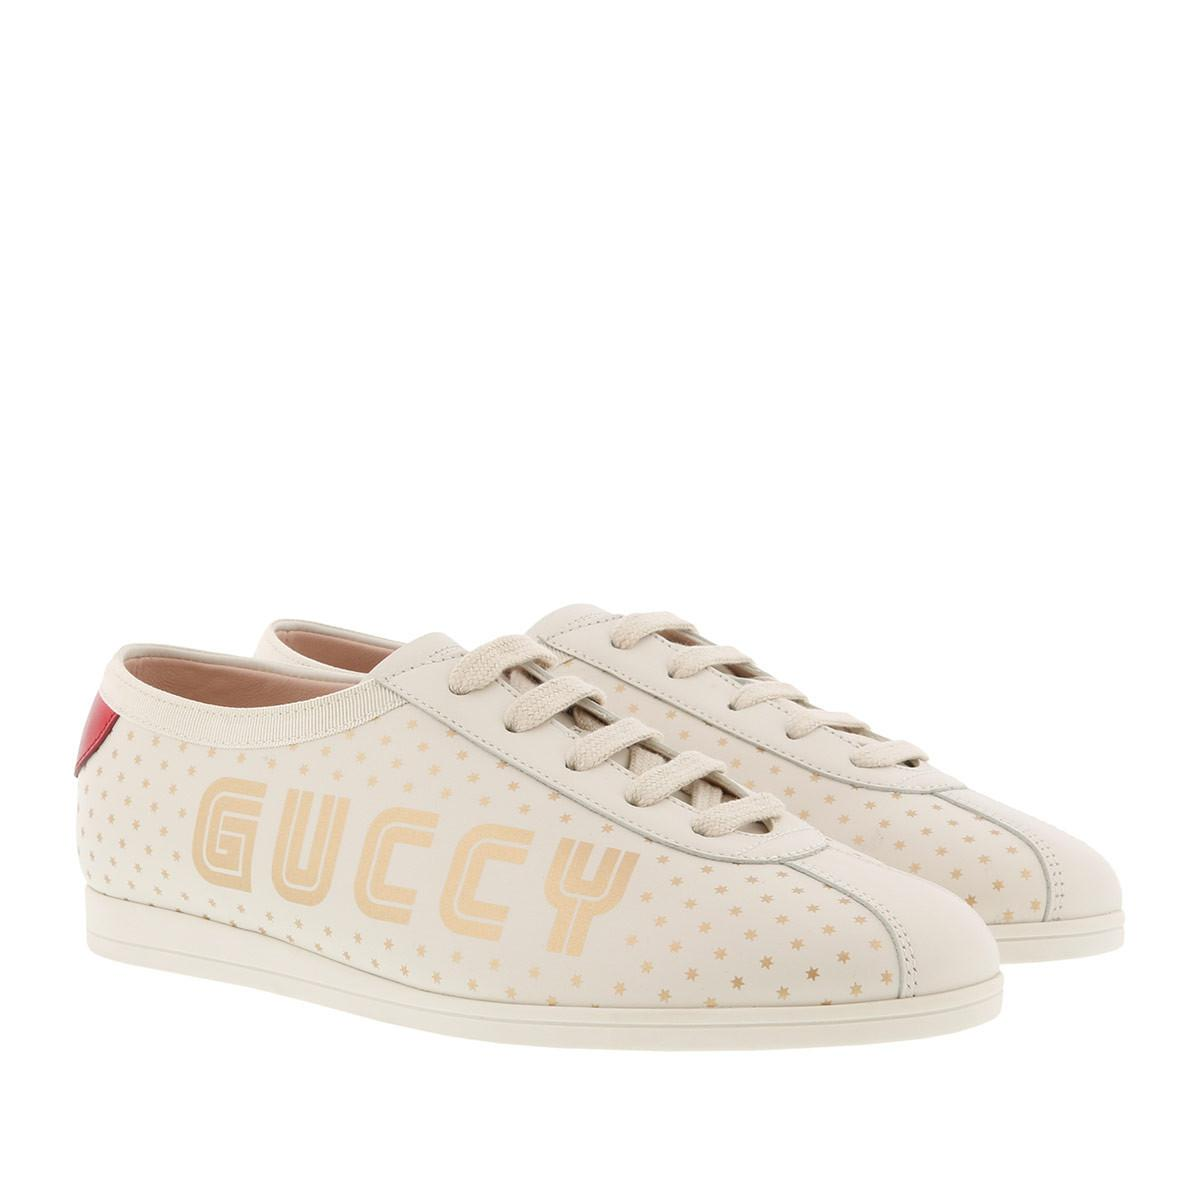 fb537af502a Gucci Replica Guccy Sneakers White in White - Lyst